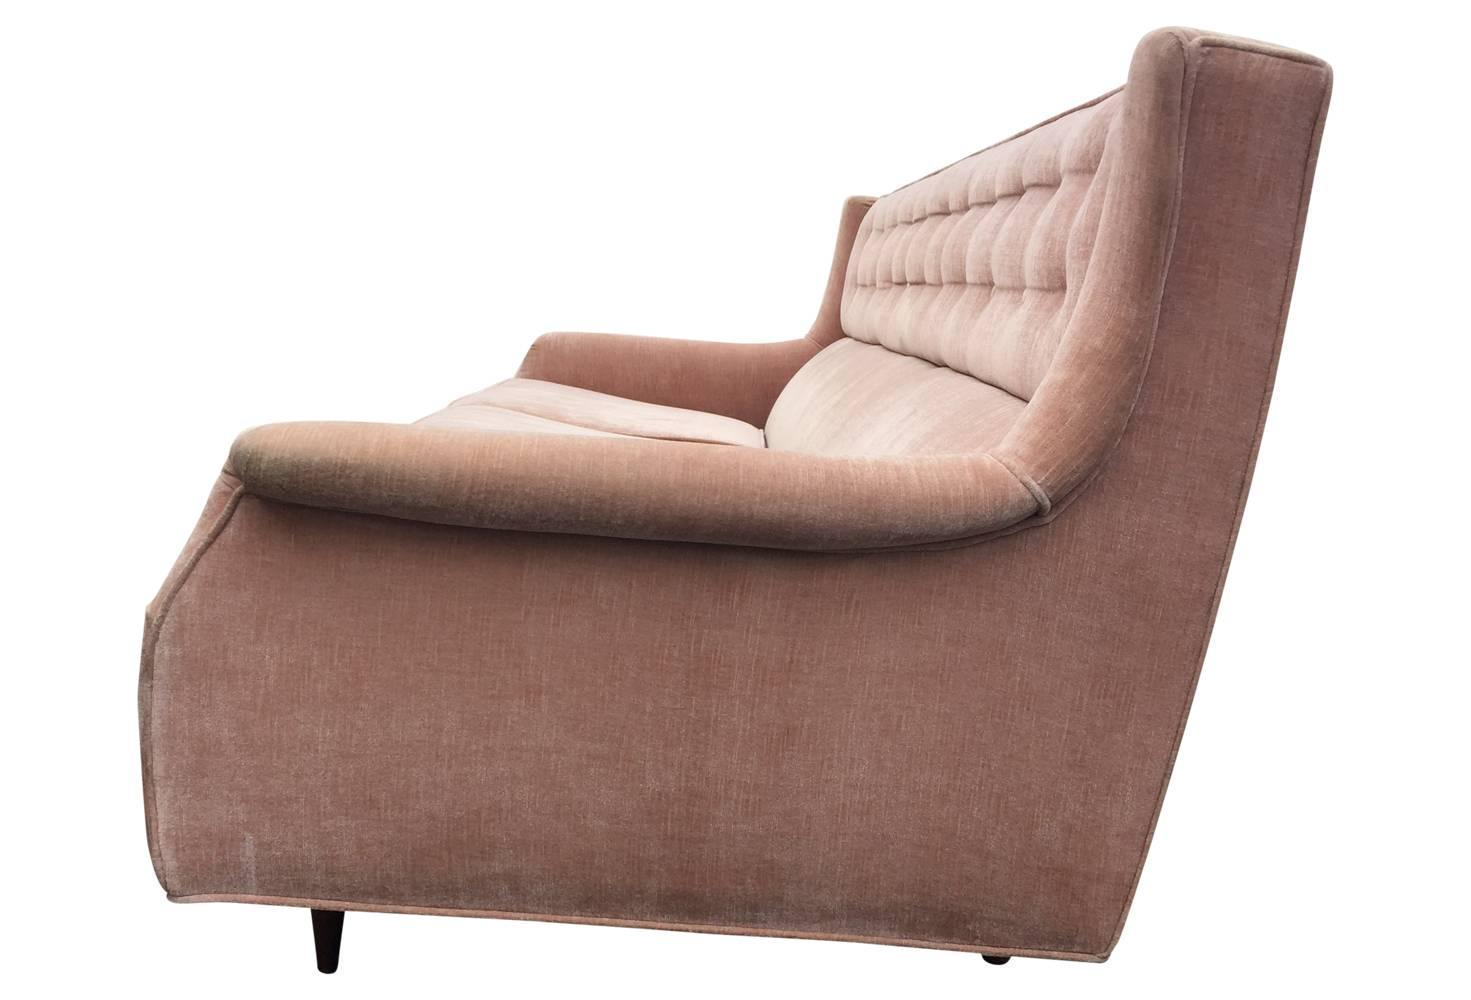 pink tufted sofa for sale macys leather sofas and loveseats blush velvet mid century modern with back